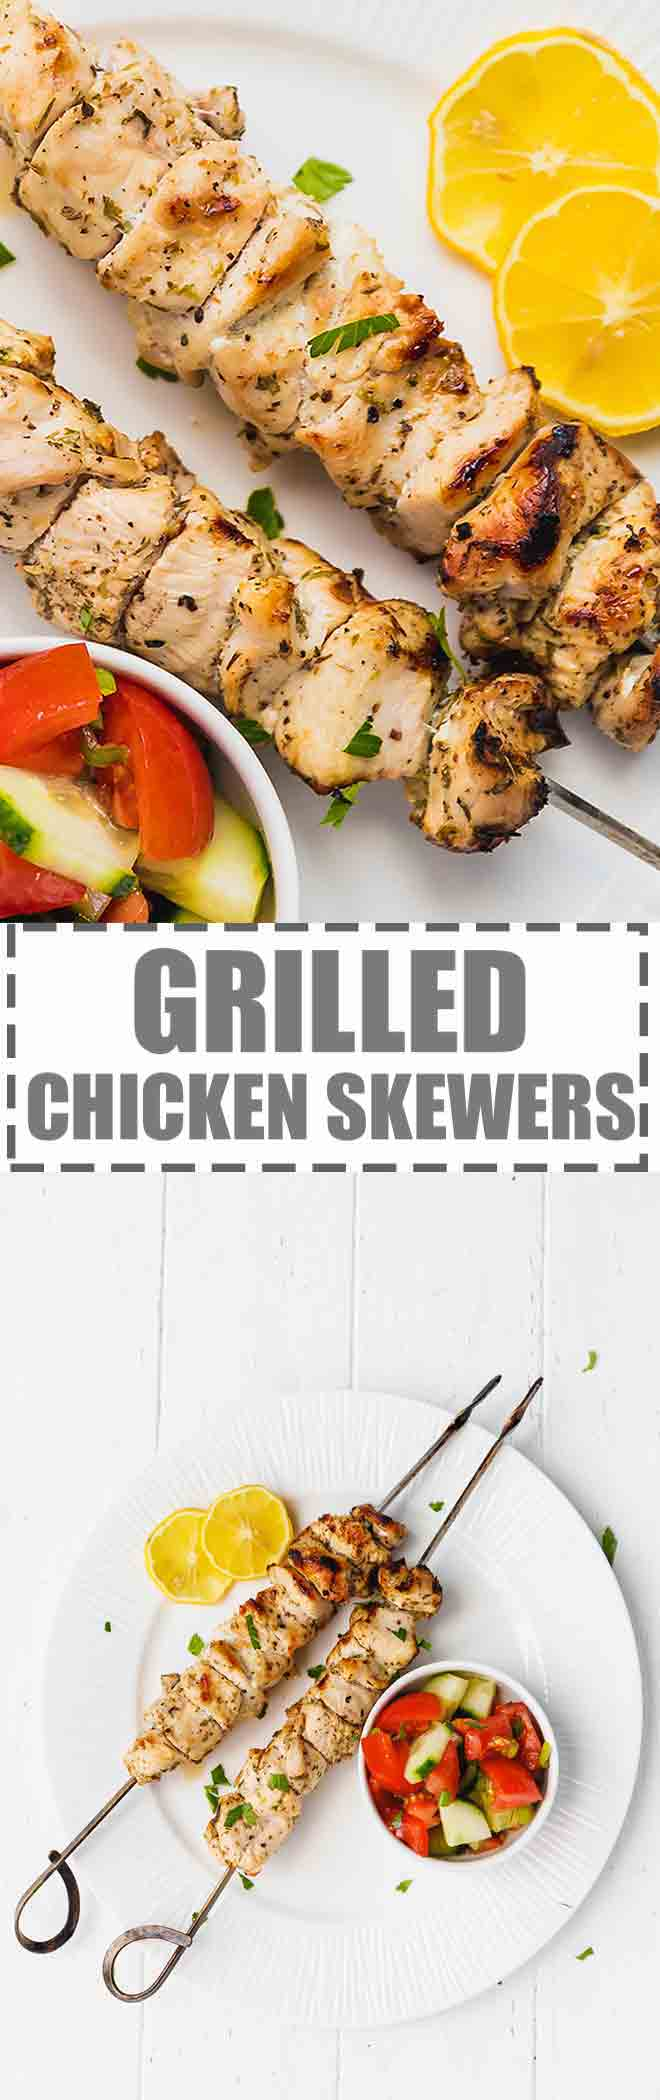 Today's recipe is for a low calorie, delicious, flavorful and full of protein meal - gilled chicken skewers.